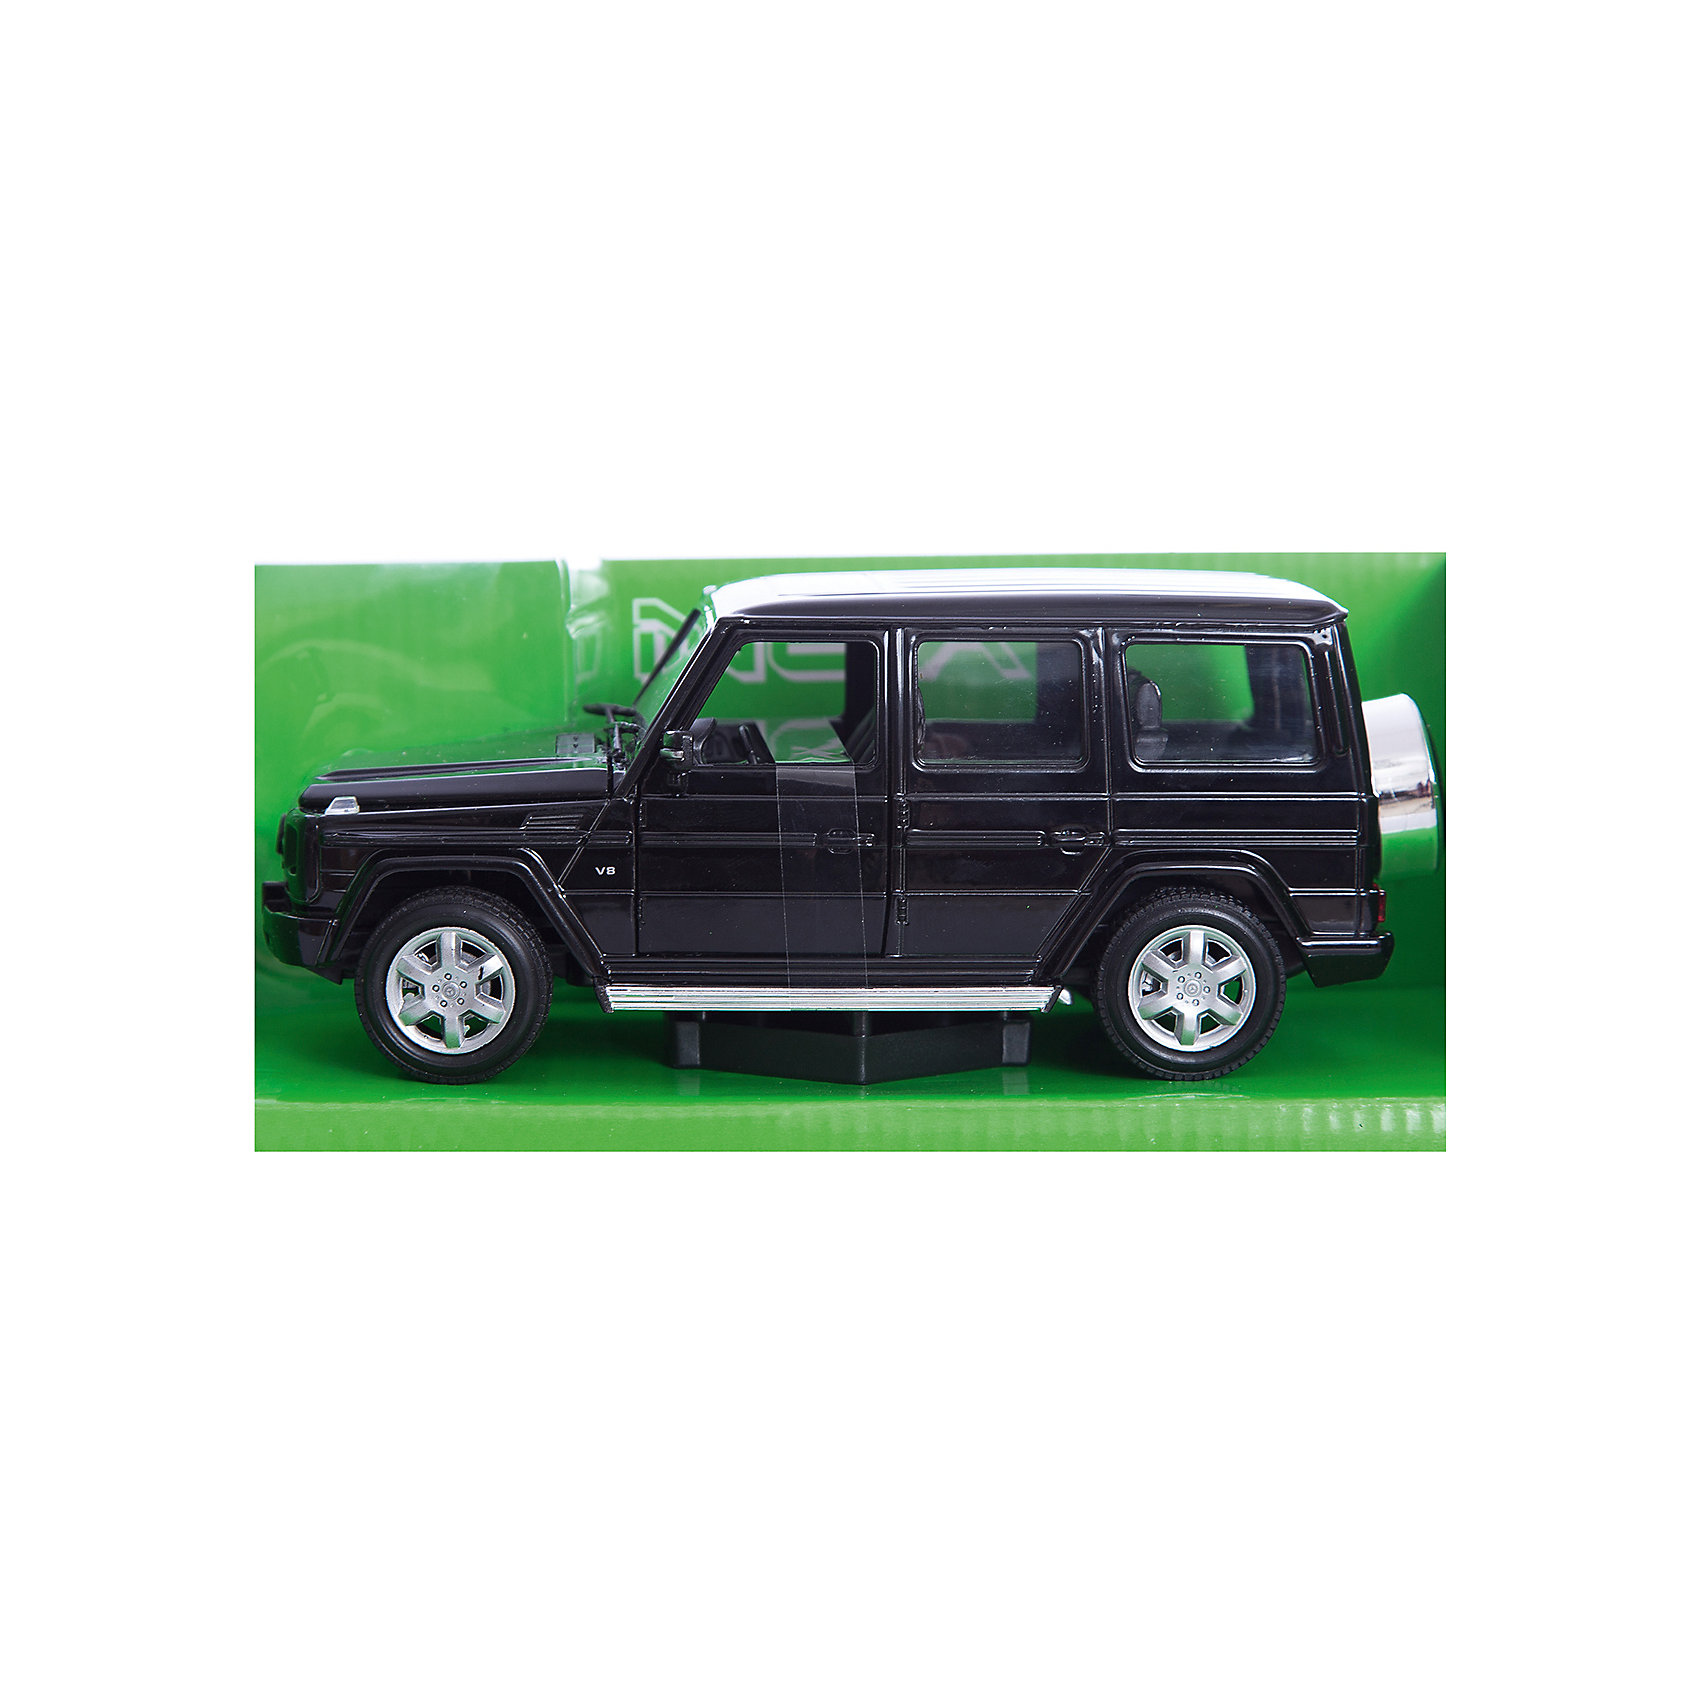 ������ ������ 1:24 Mercedes-Benz G-Class, Welly